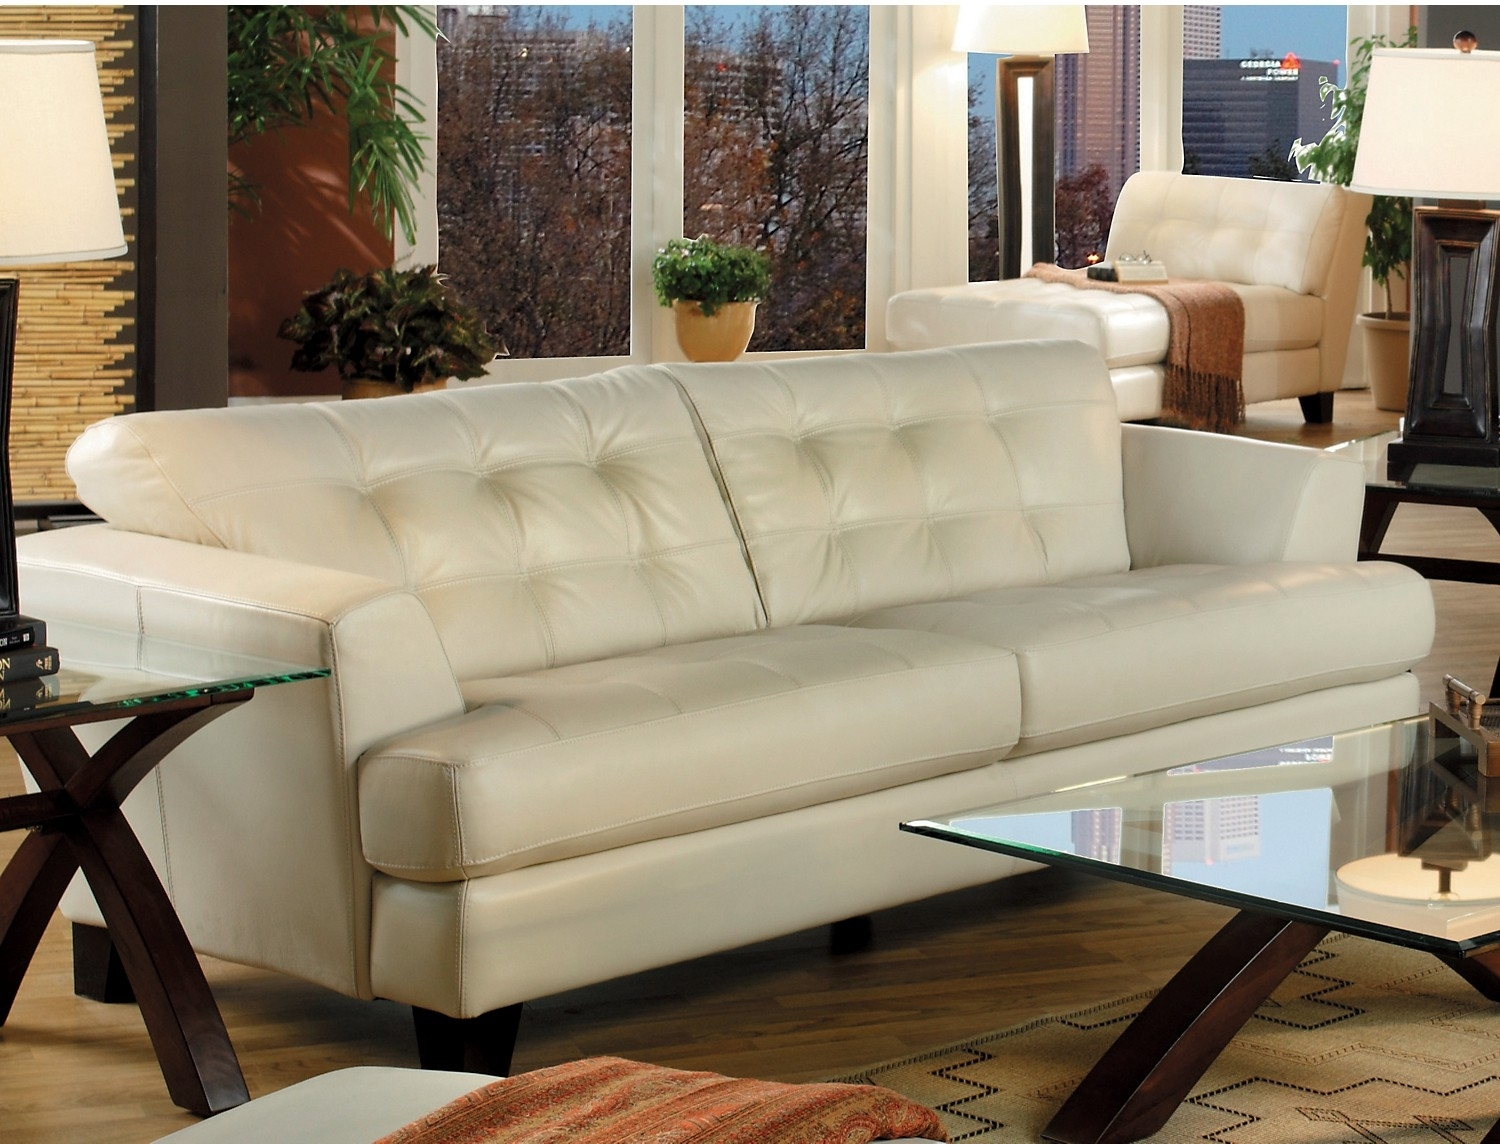 Main Floor Avenue Genuine Leather Sofa Ivory The Brick Home Intended For Brick Sofas (Image 9 of 15)